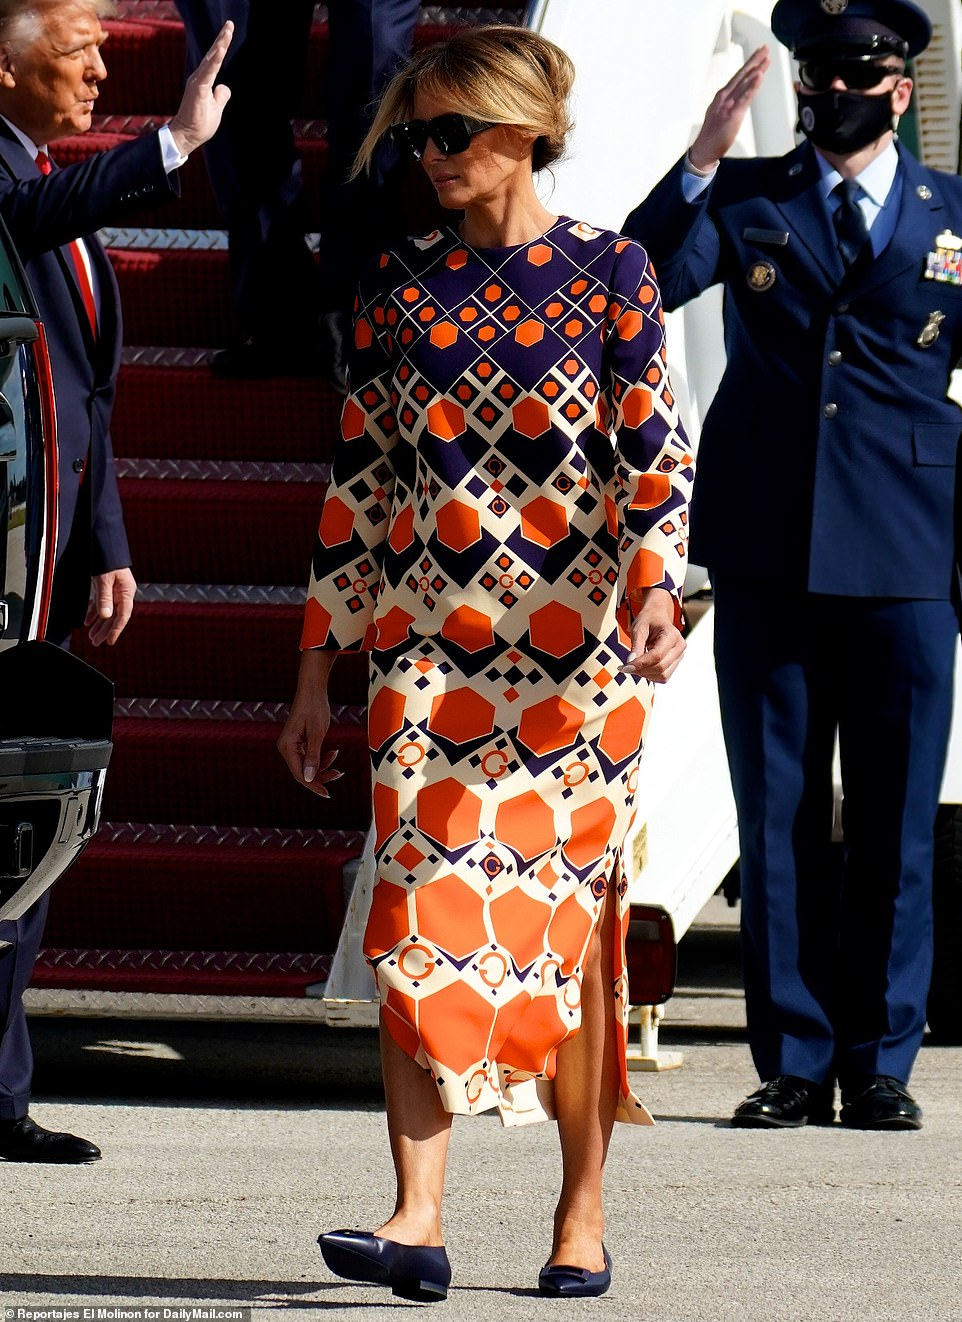 Changes: Melania changed her outfit on the plane from Washington, D.C., swapping a somber black ensemble for a colorful $3,700 Gucci dress and navy ballerina flats